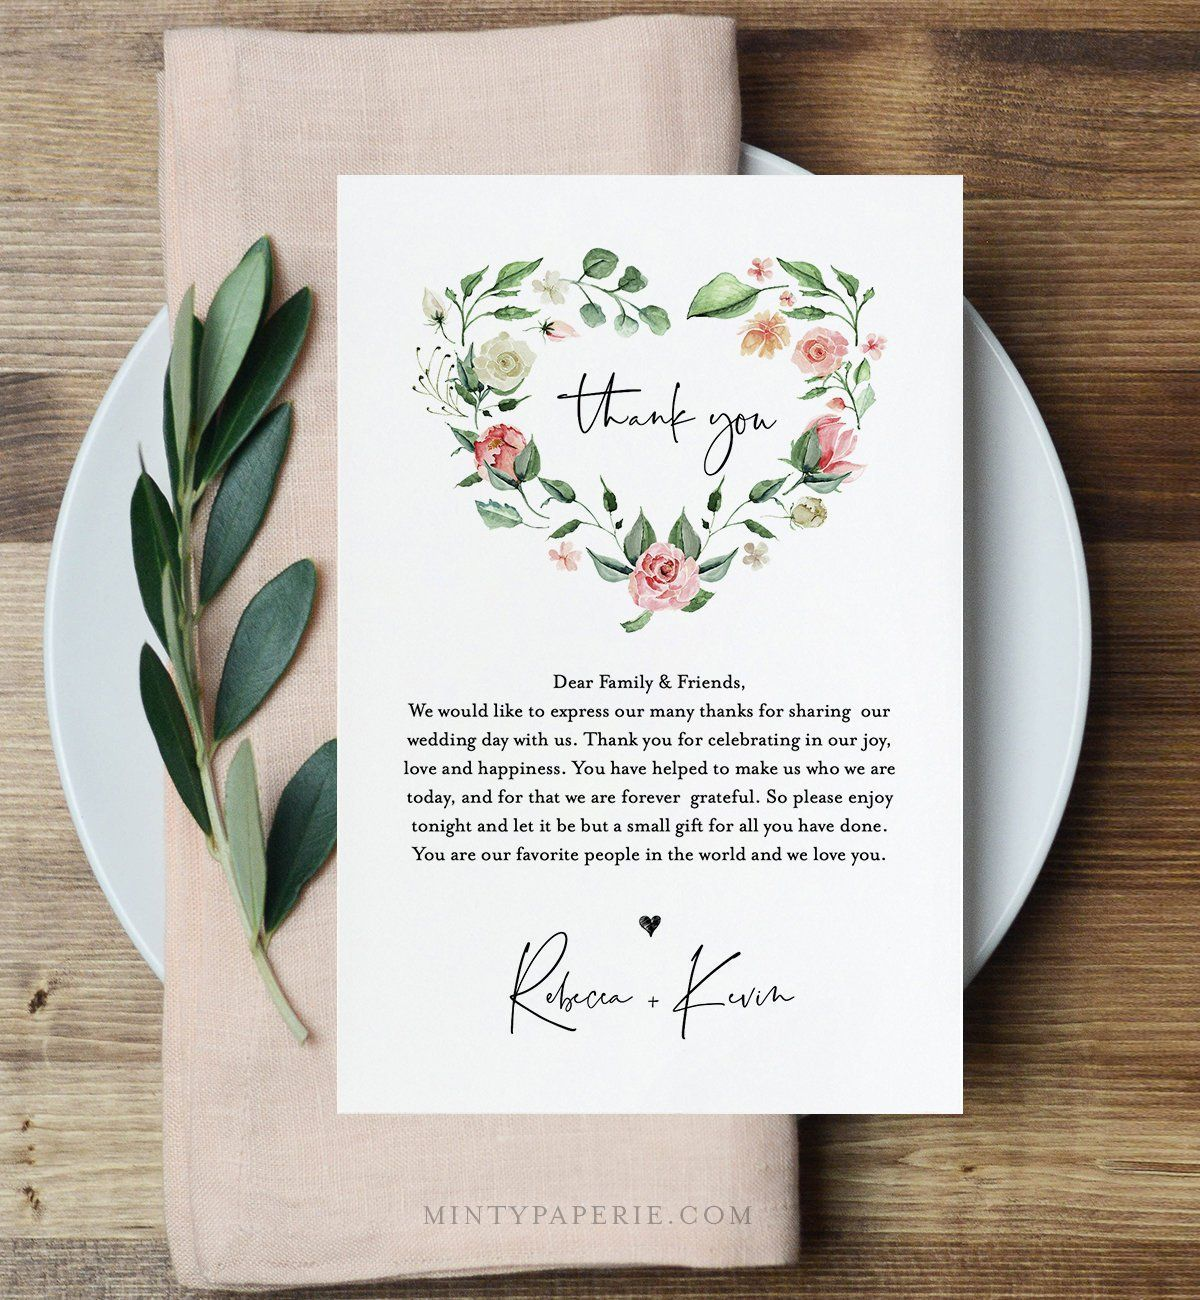 Wedding Thank You Letter, In Lieu of Favor Card Template, Napkin Note, INSTANT DOWNLOAD, 100% Editable Text, Floral Wreath, DIY #058-111TYN -  Just how to Have the Bride Bouquet and Lick Boutonniere Harmony? When looking for bridal bouquet designs, you must first choose whether to select live bridal plants or synthetic flowers. Therefore, how should the equilibrium of a live or synthetic bridal arrangement and groom boutonniere be achieved? You need to use a miniature of the bridal bouquet or d